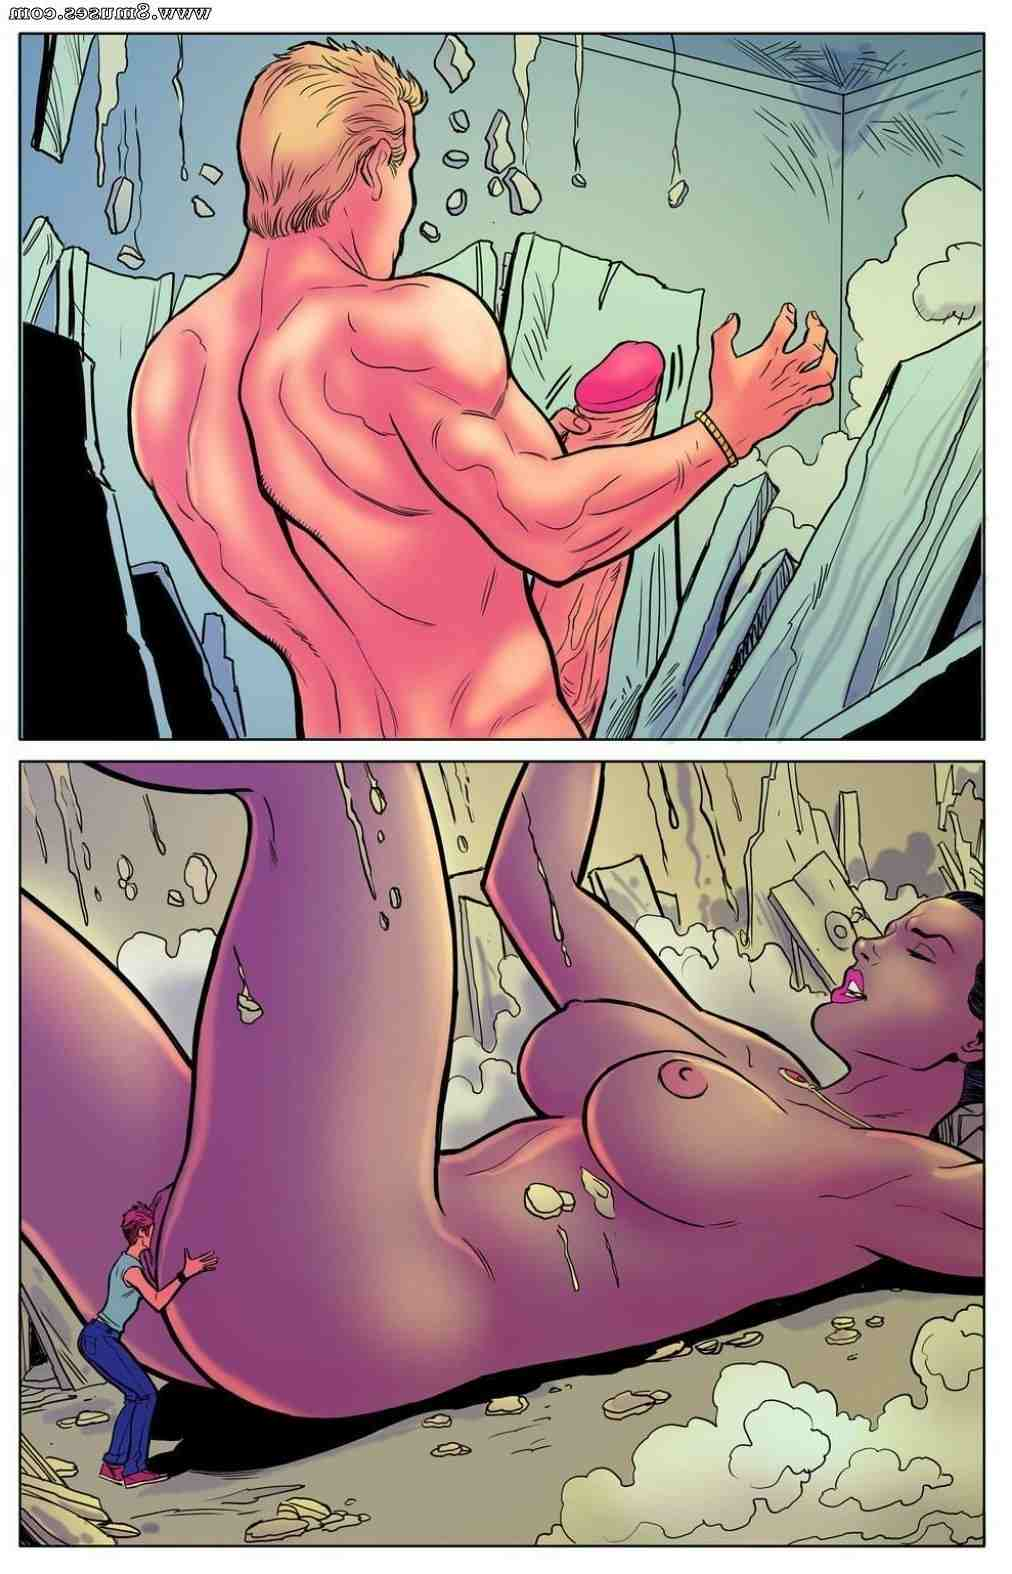 Giantess-Club-Comics/Couples-Therapy Couples_Therapy__8muses_-_Sex_and_Porn_Comics_3.jpg